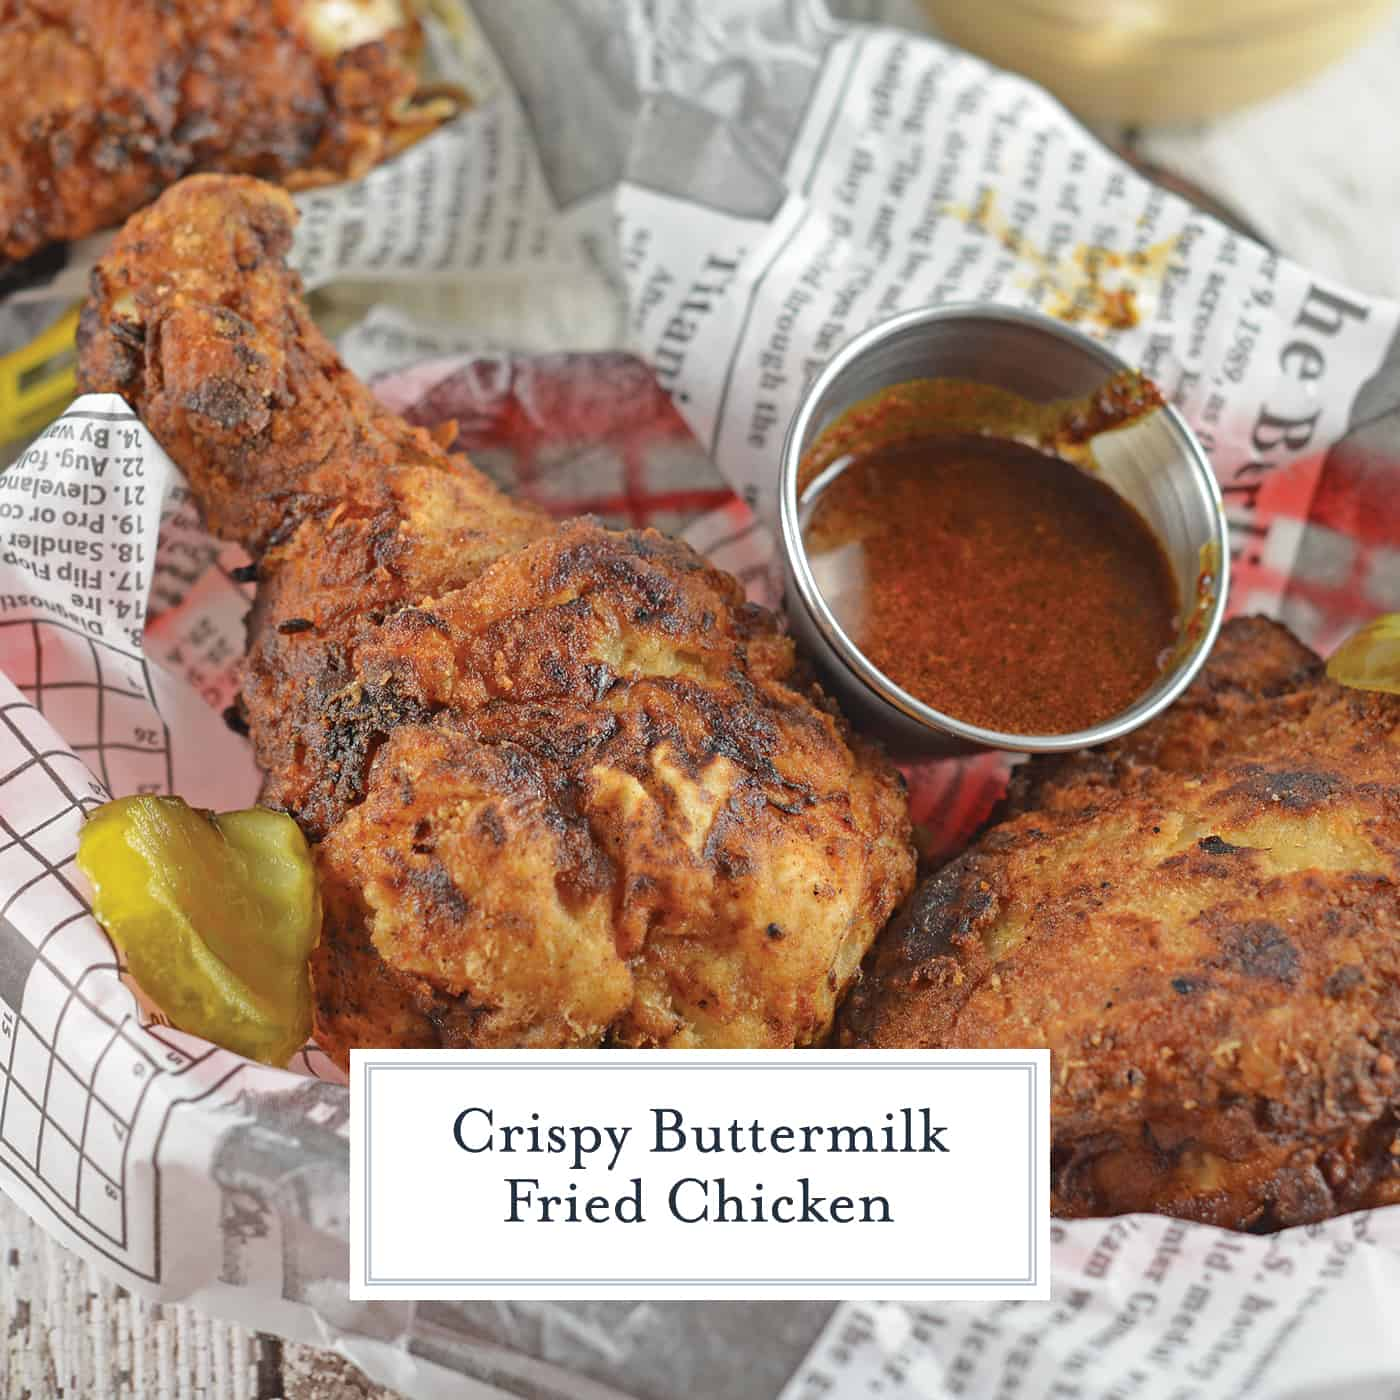 The best Buttermilk Fried Chicken recipe! Brined chicken with fresh herbs, buttermilk and seasonings makes for a crispy, flavorful southern fried chicken! #buttermilkfriedchicken #howtomakefriedchicken www.savoryexperiments.com